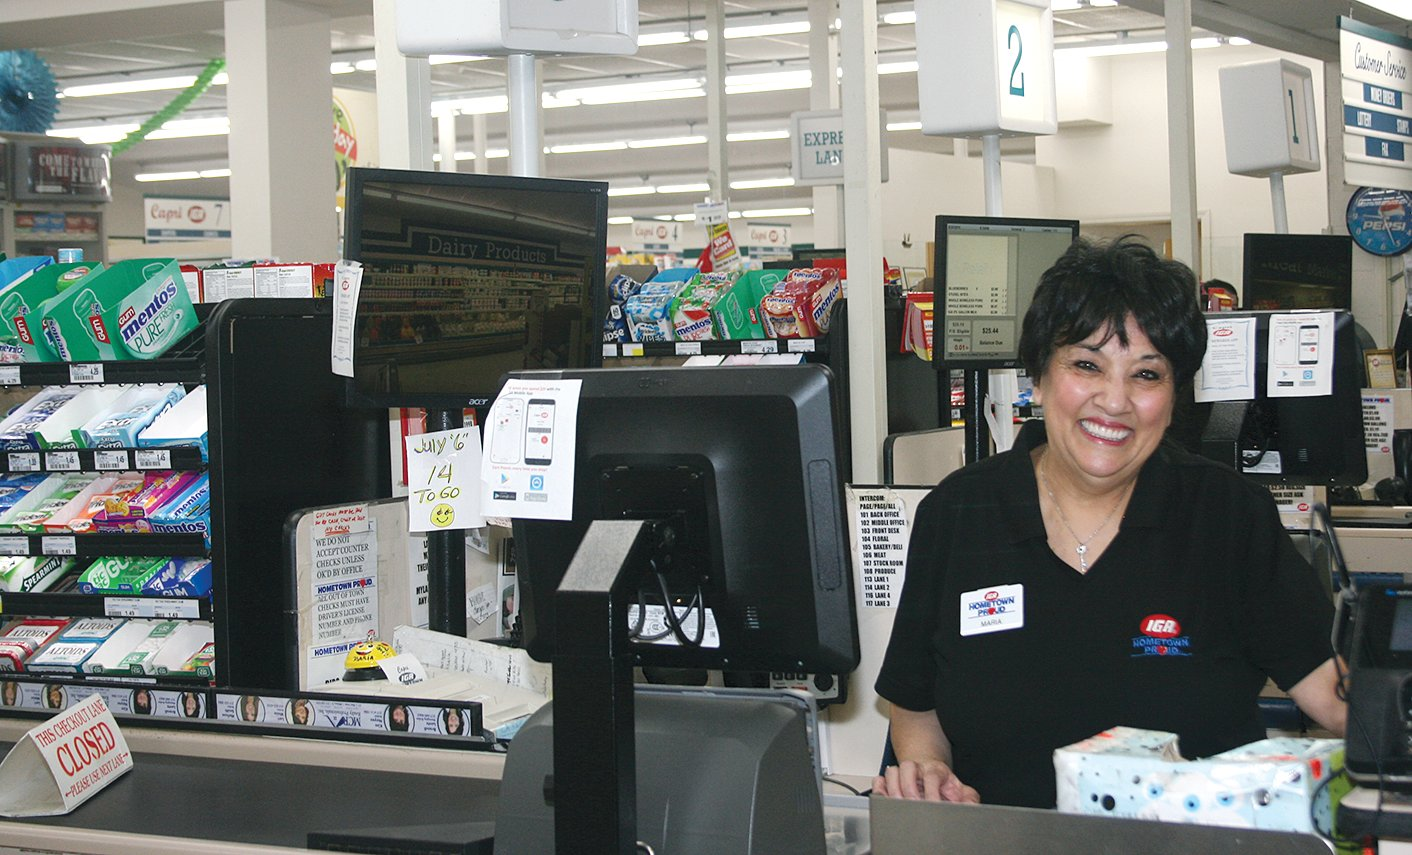 Longtime Capri IGA employee Maria Grammer retired from the store in July. Her last official day was Saturday, July 6.